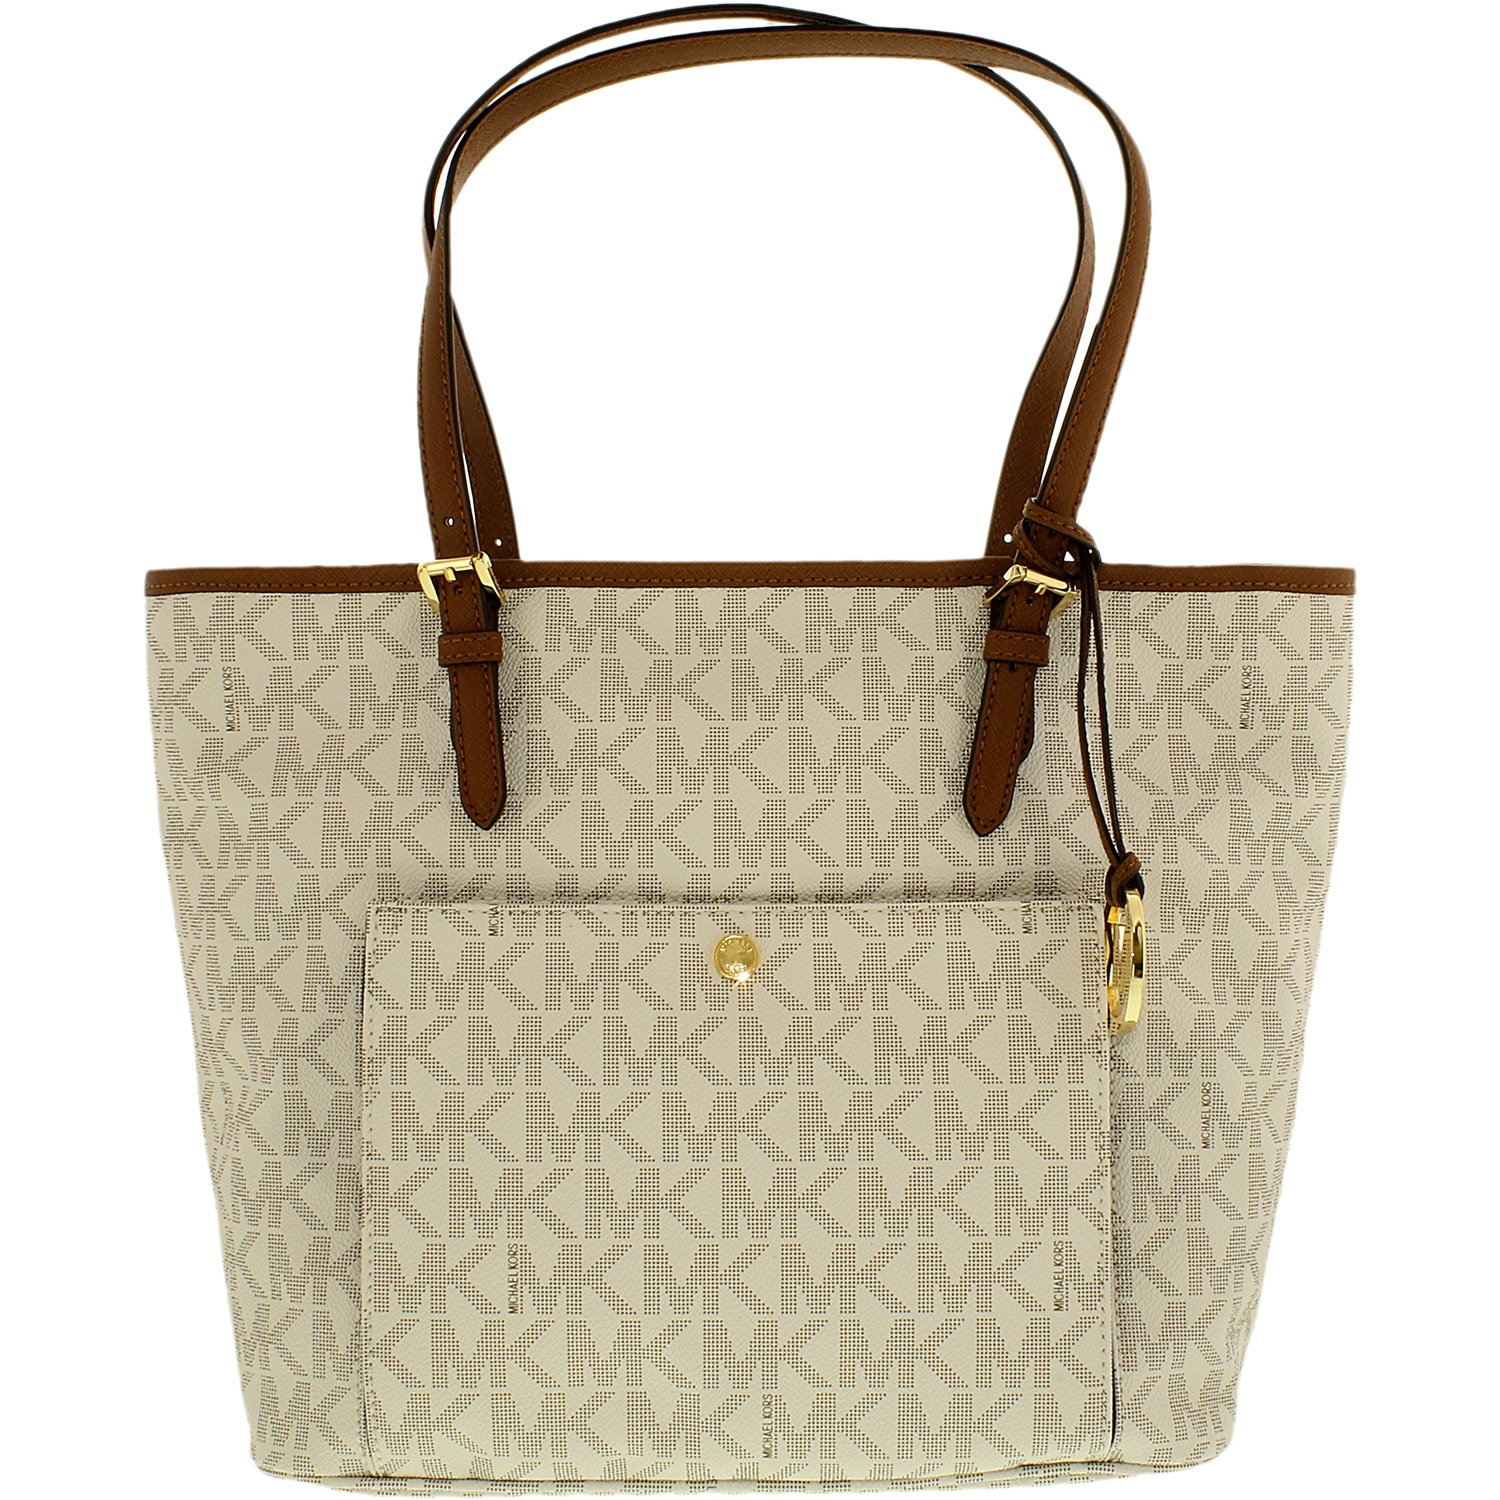 Michael Kors Women's Large Jet Set Snap Pocket Leather Top-Handle Tote - Vanilla